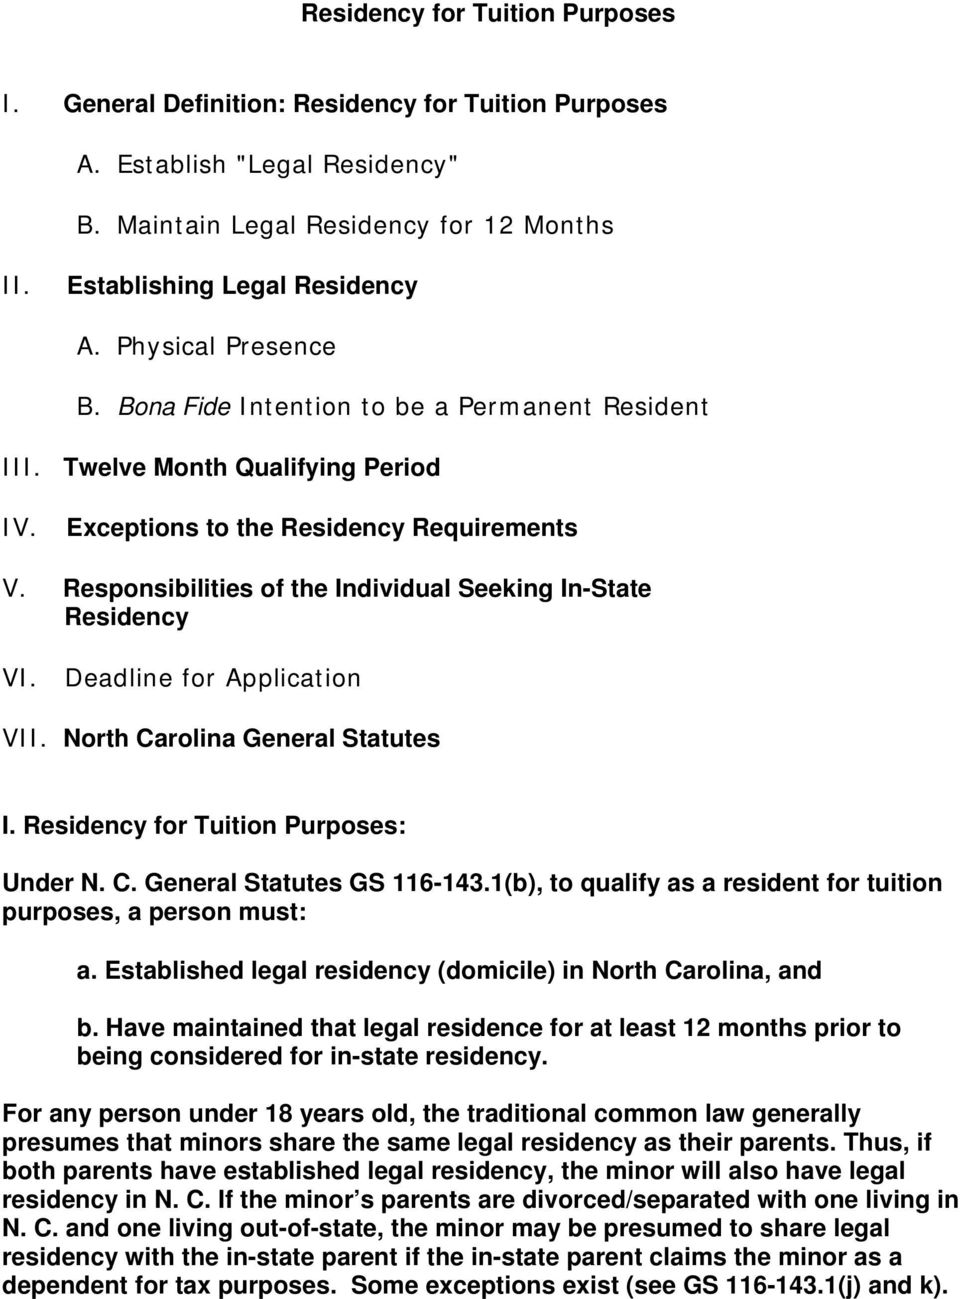 Responsibilities of the Individual Seeking In-State Residency VI. Deadline for Application VII. North Carolina General Statutes I. Residency for Tuition Purposes: Under N. C. General Statutes GS 116-143.